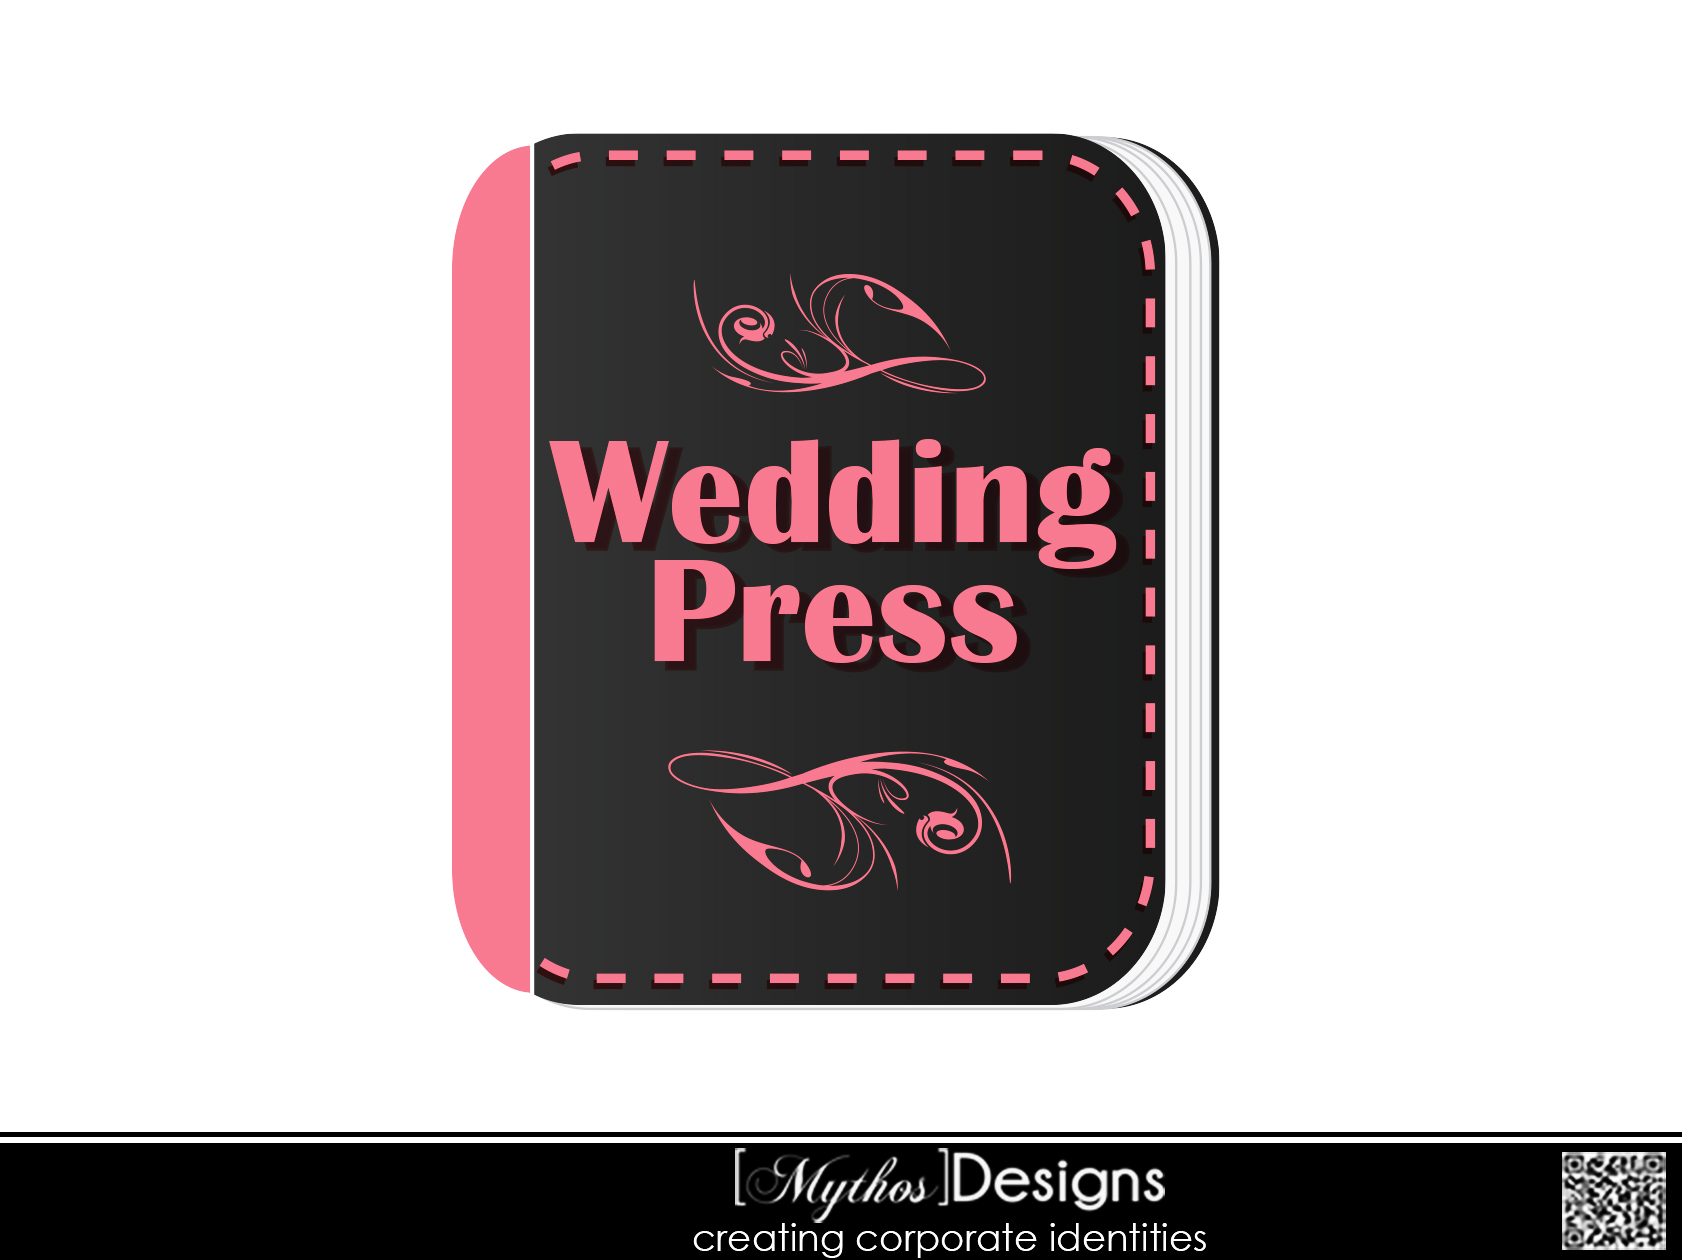 Logo Design by Mythos Designs - Entry No. 42 in the Logo Design Contest Wedding Writes Logo Design.